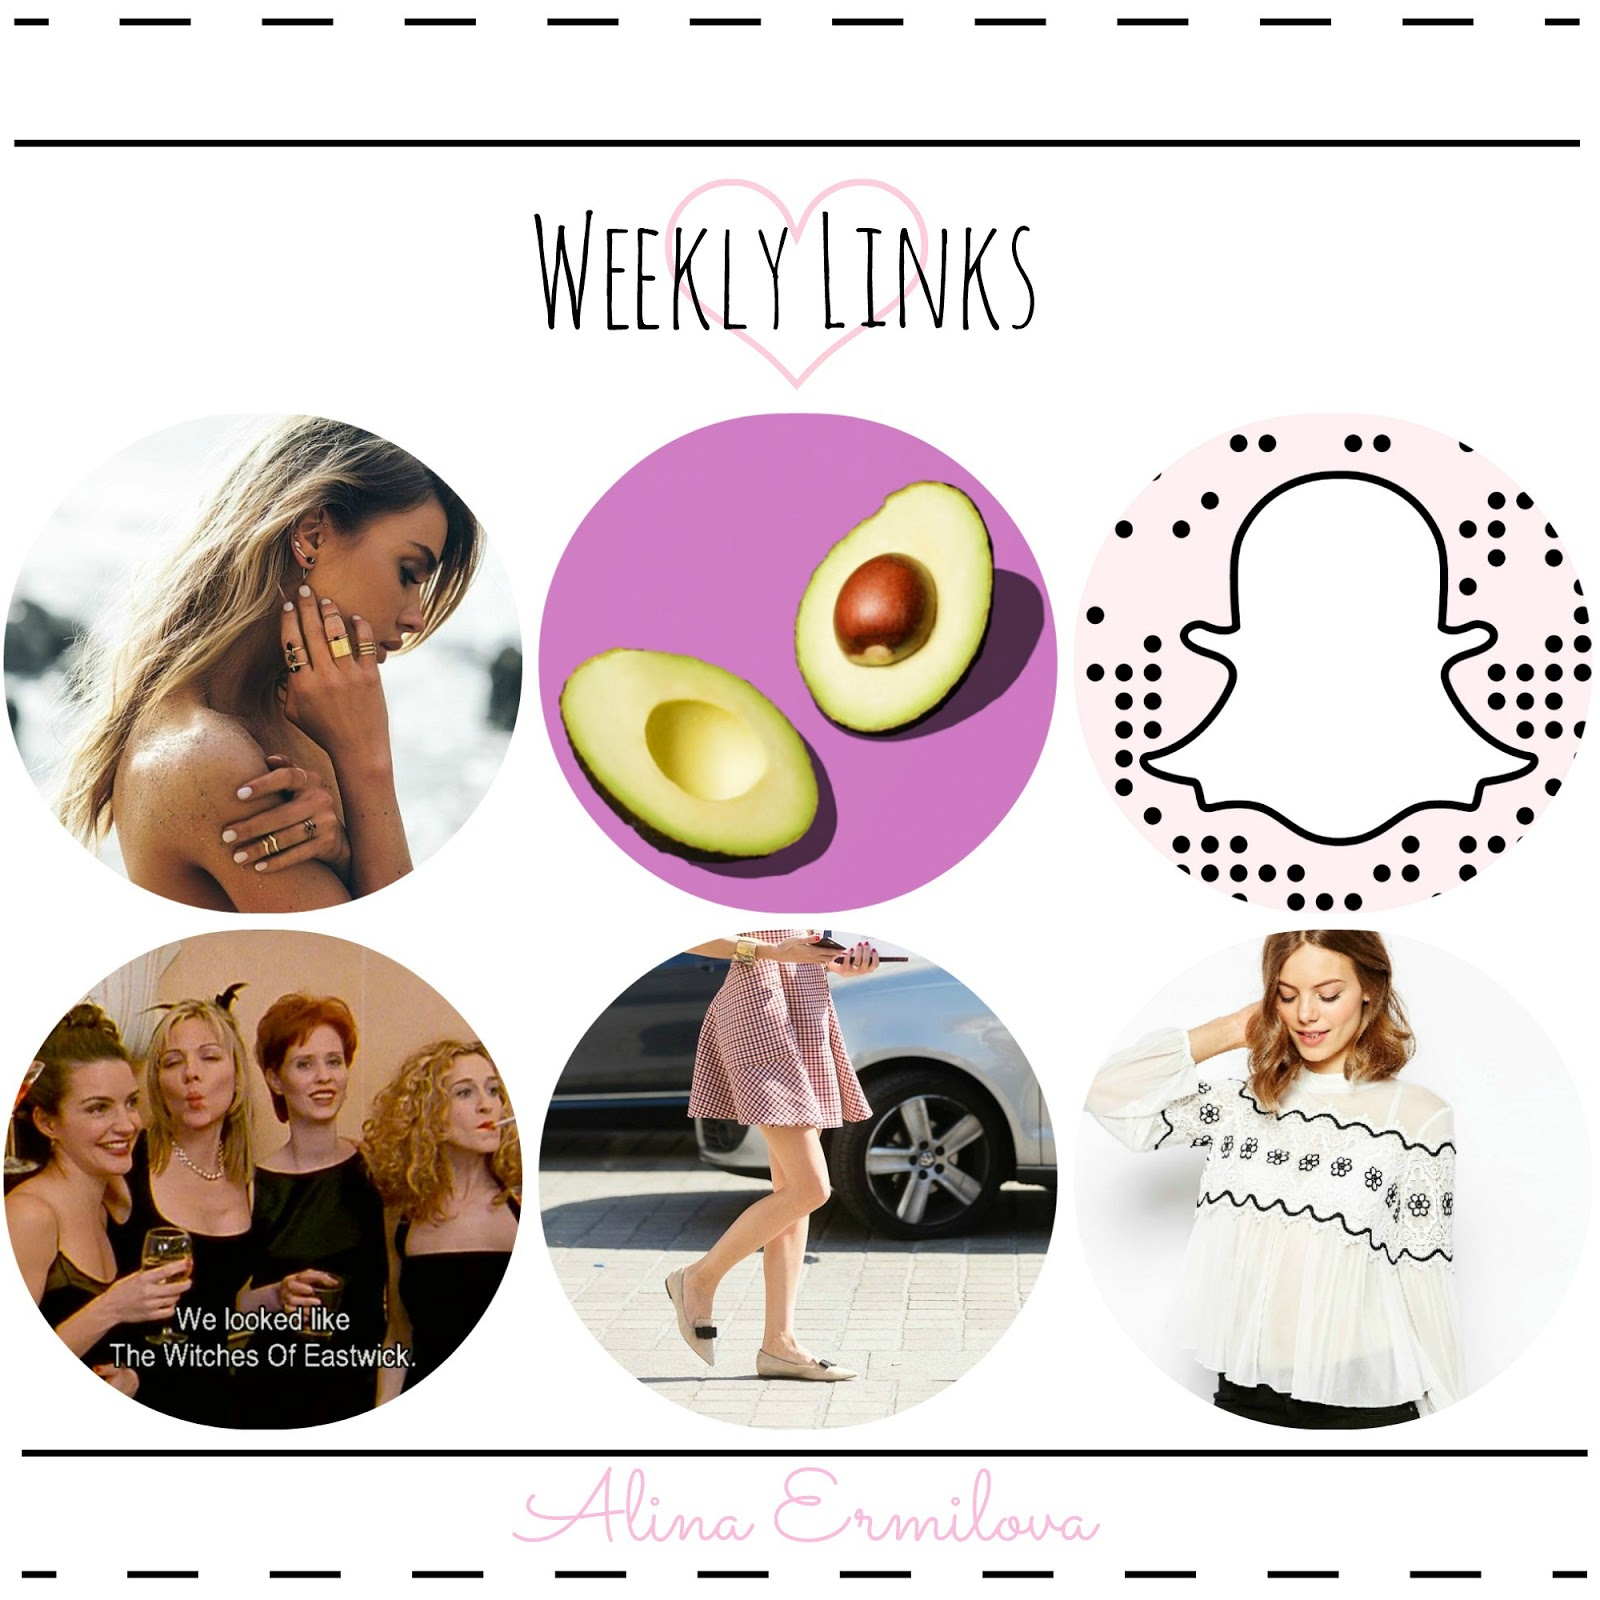 How to ripen an avocado, 9 Pro Snapchat tips, 3 Slimming style tricks, etc.